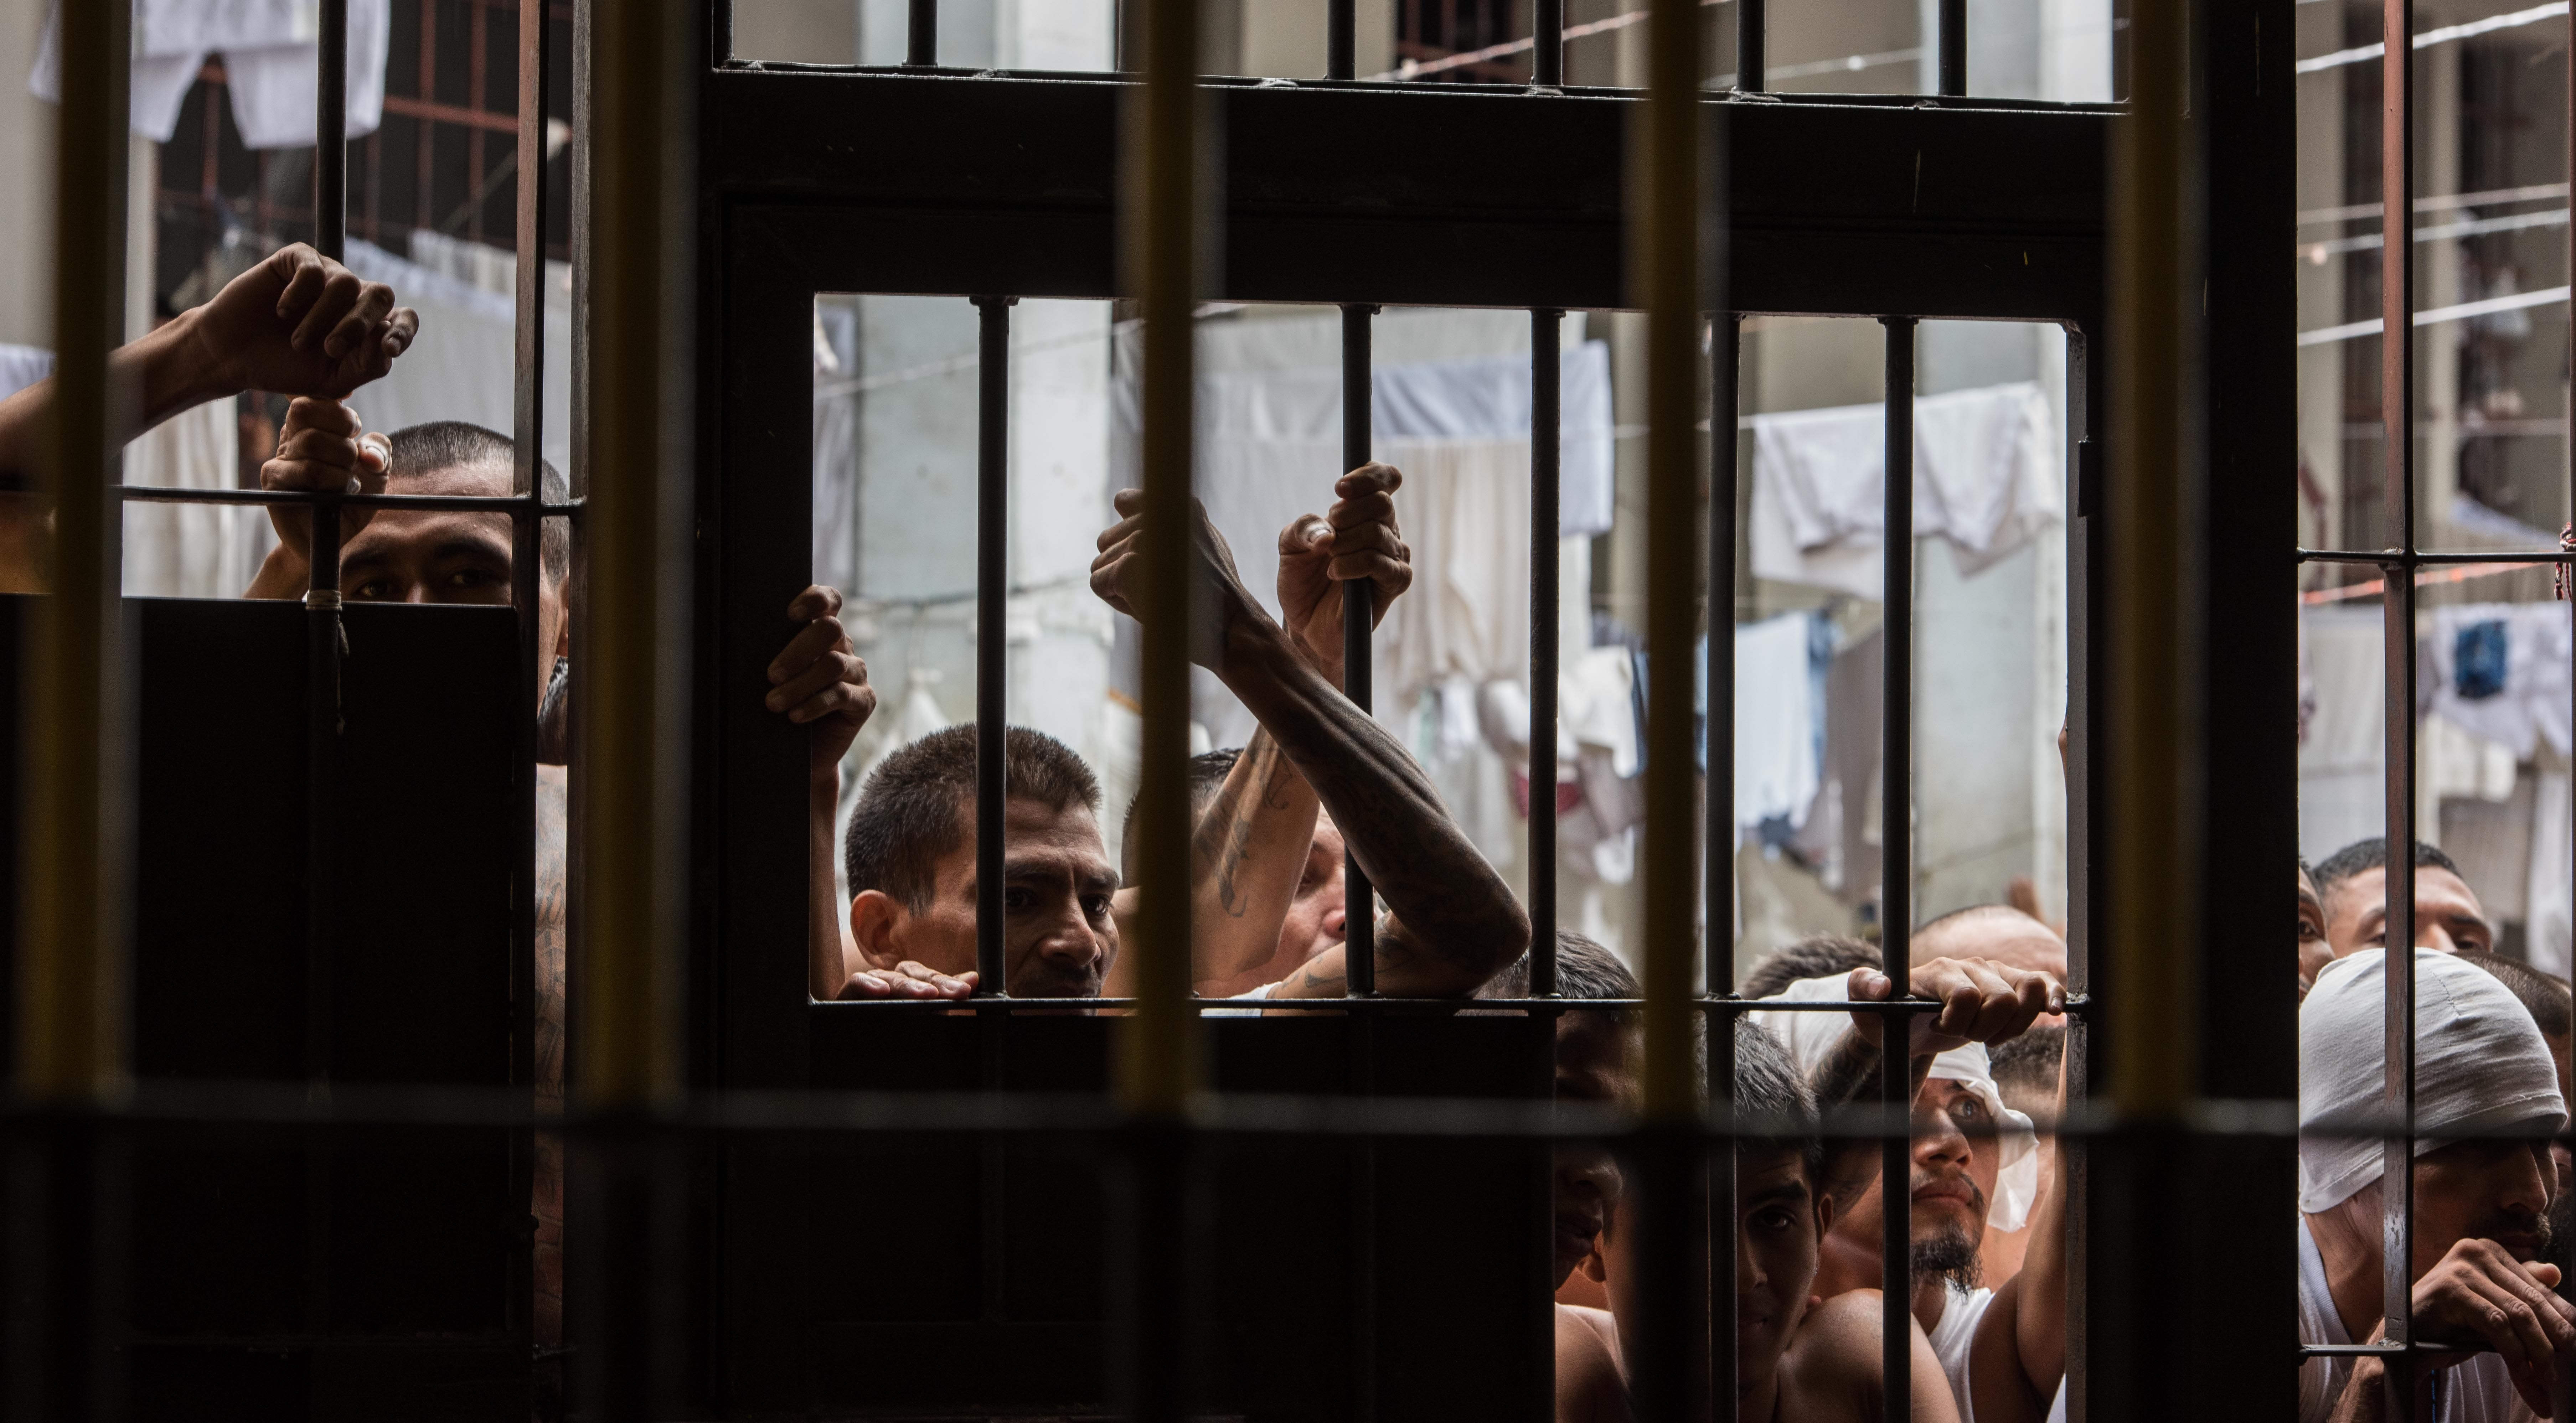 Gang members gather behind bars